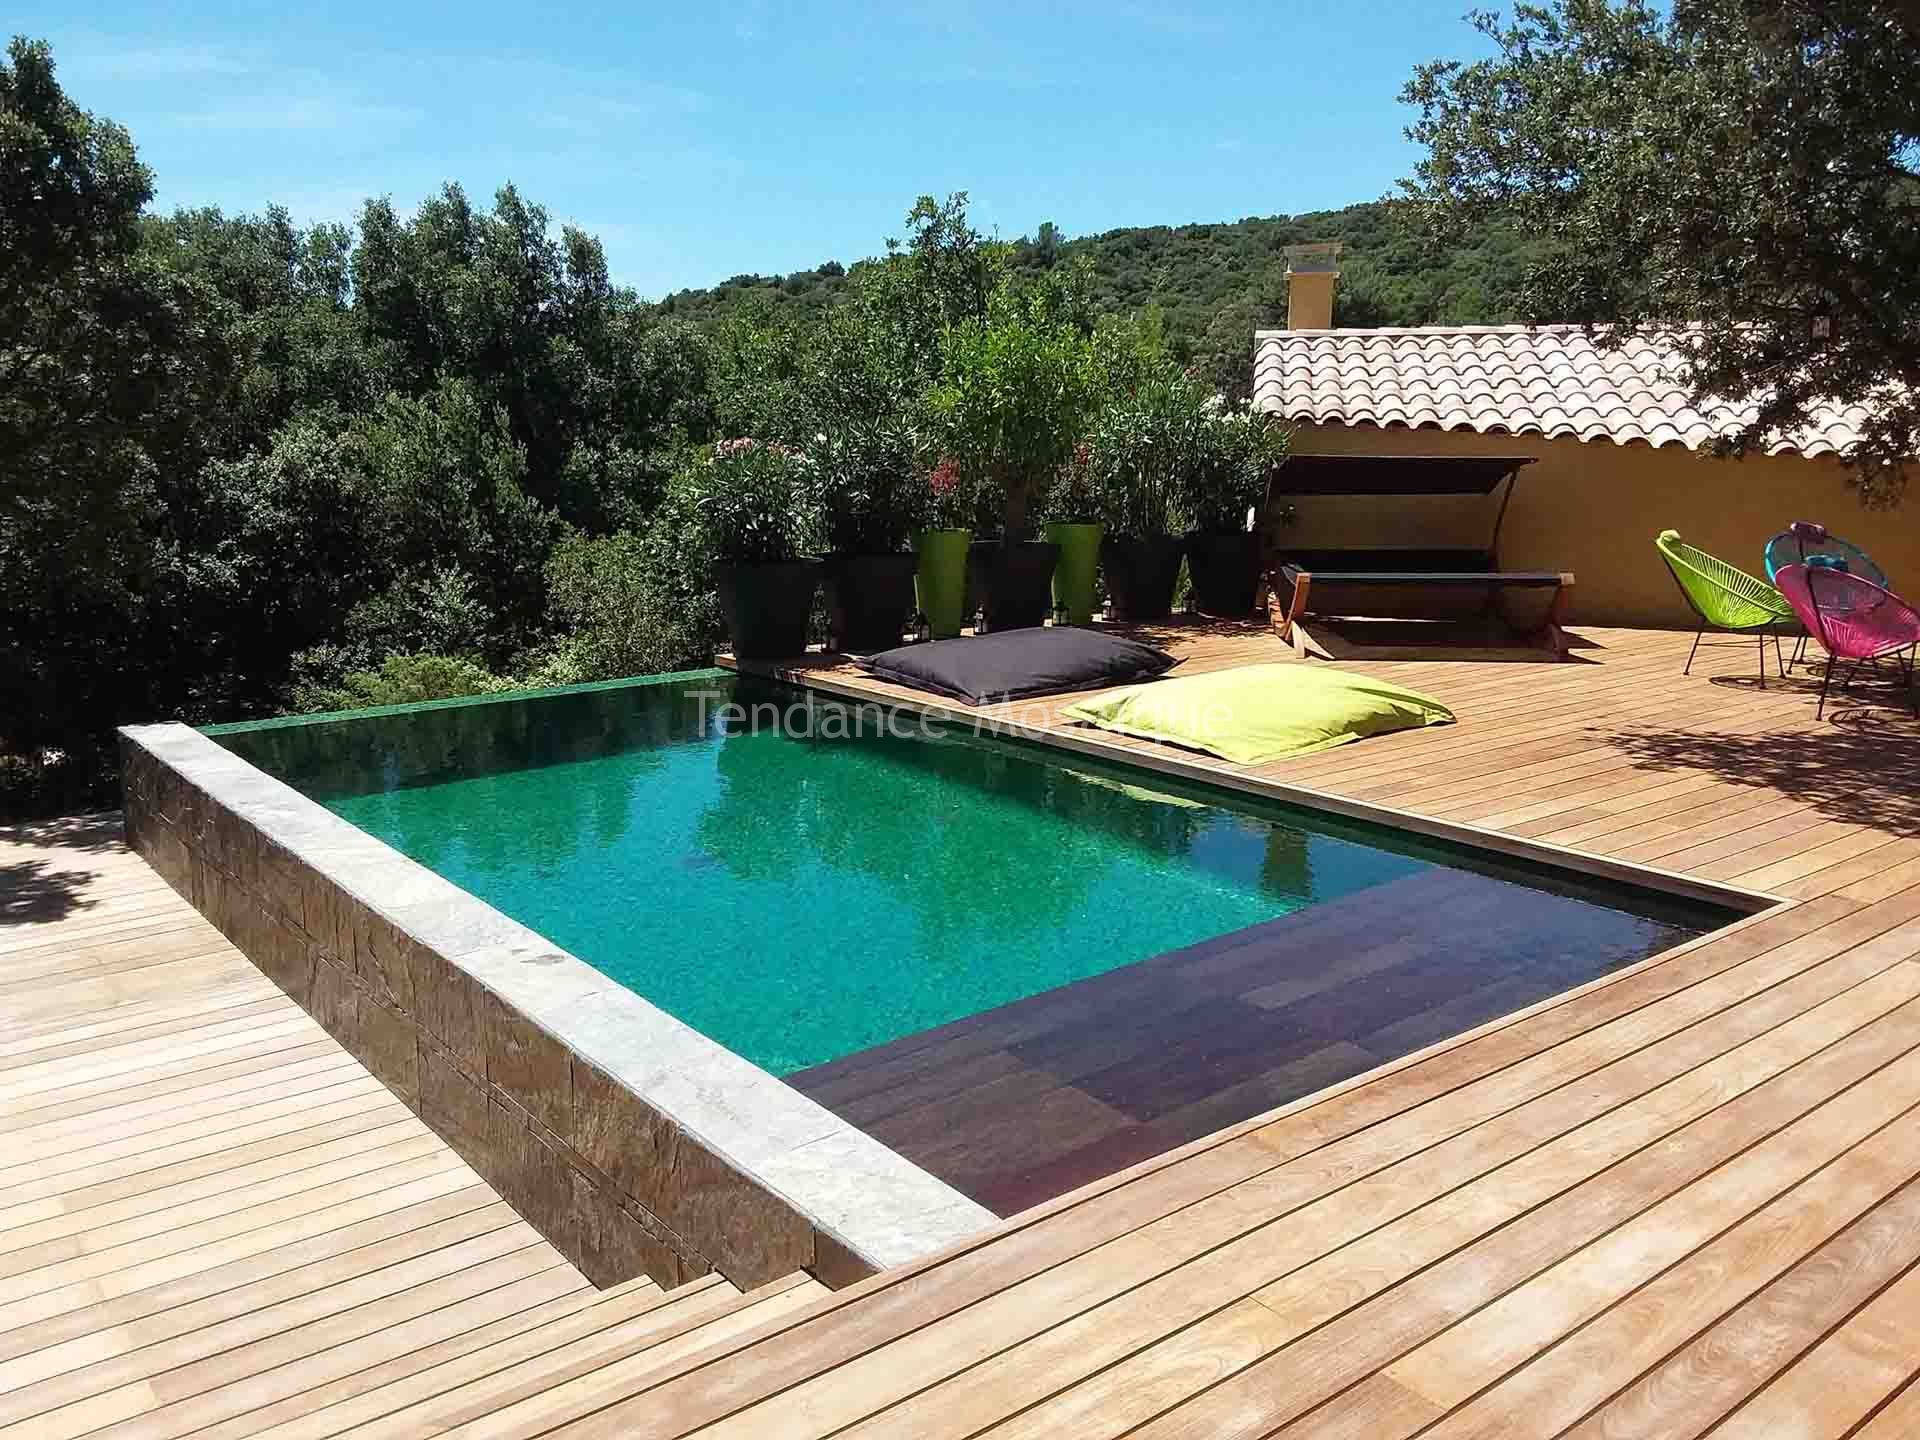 piscine en p te de verre dolce mosaic r f rence amazon carrelage piscine. Black Bedroom Furniture Sets. Home Design Ideas